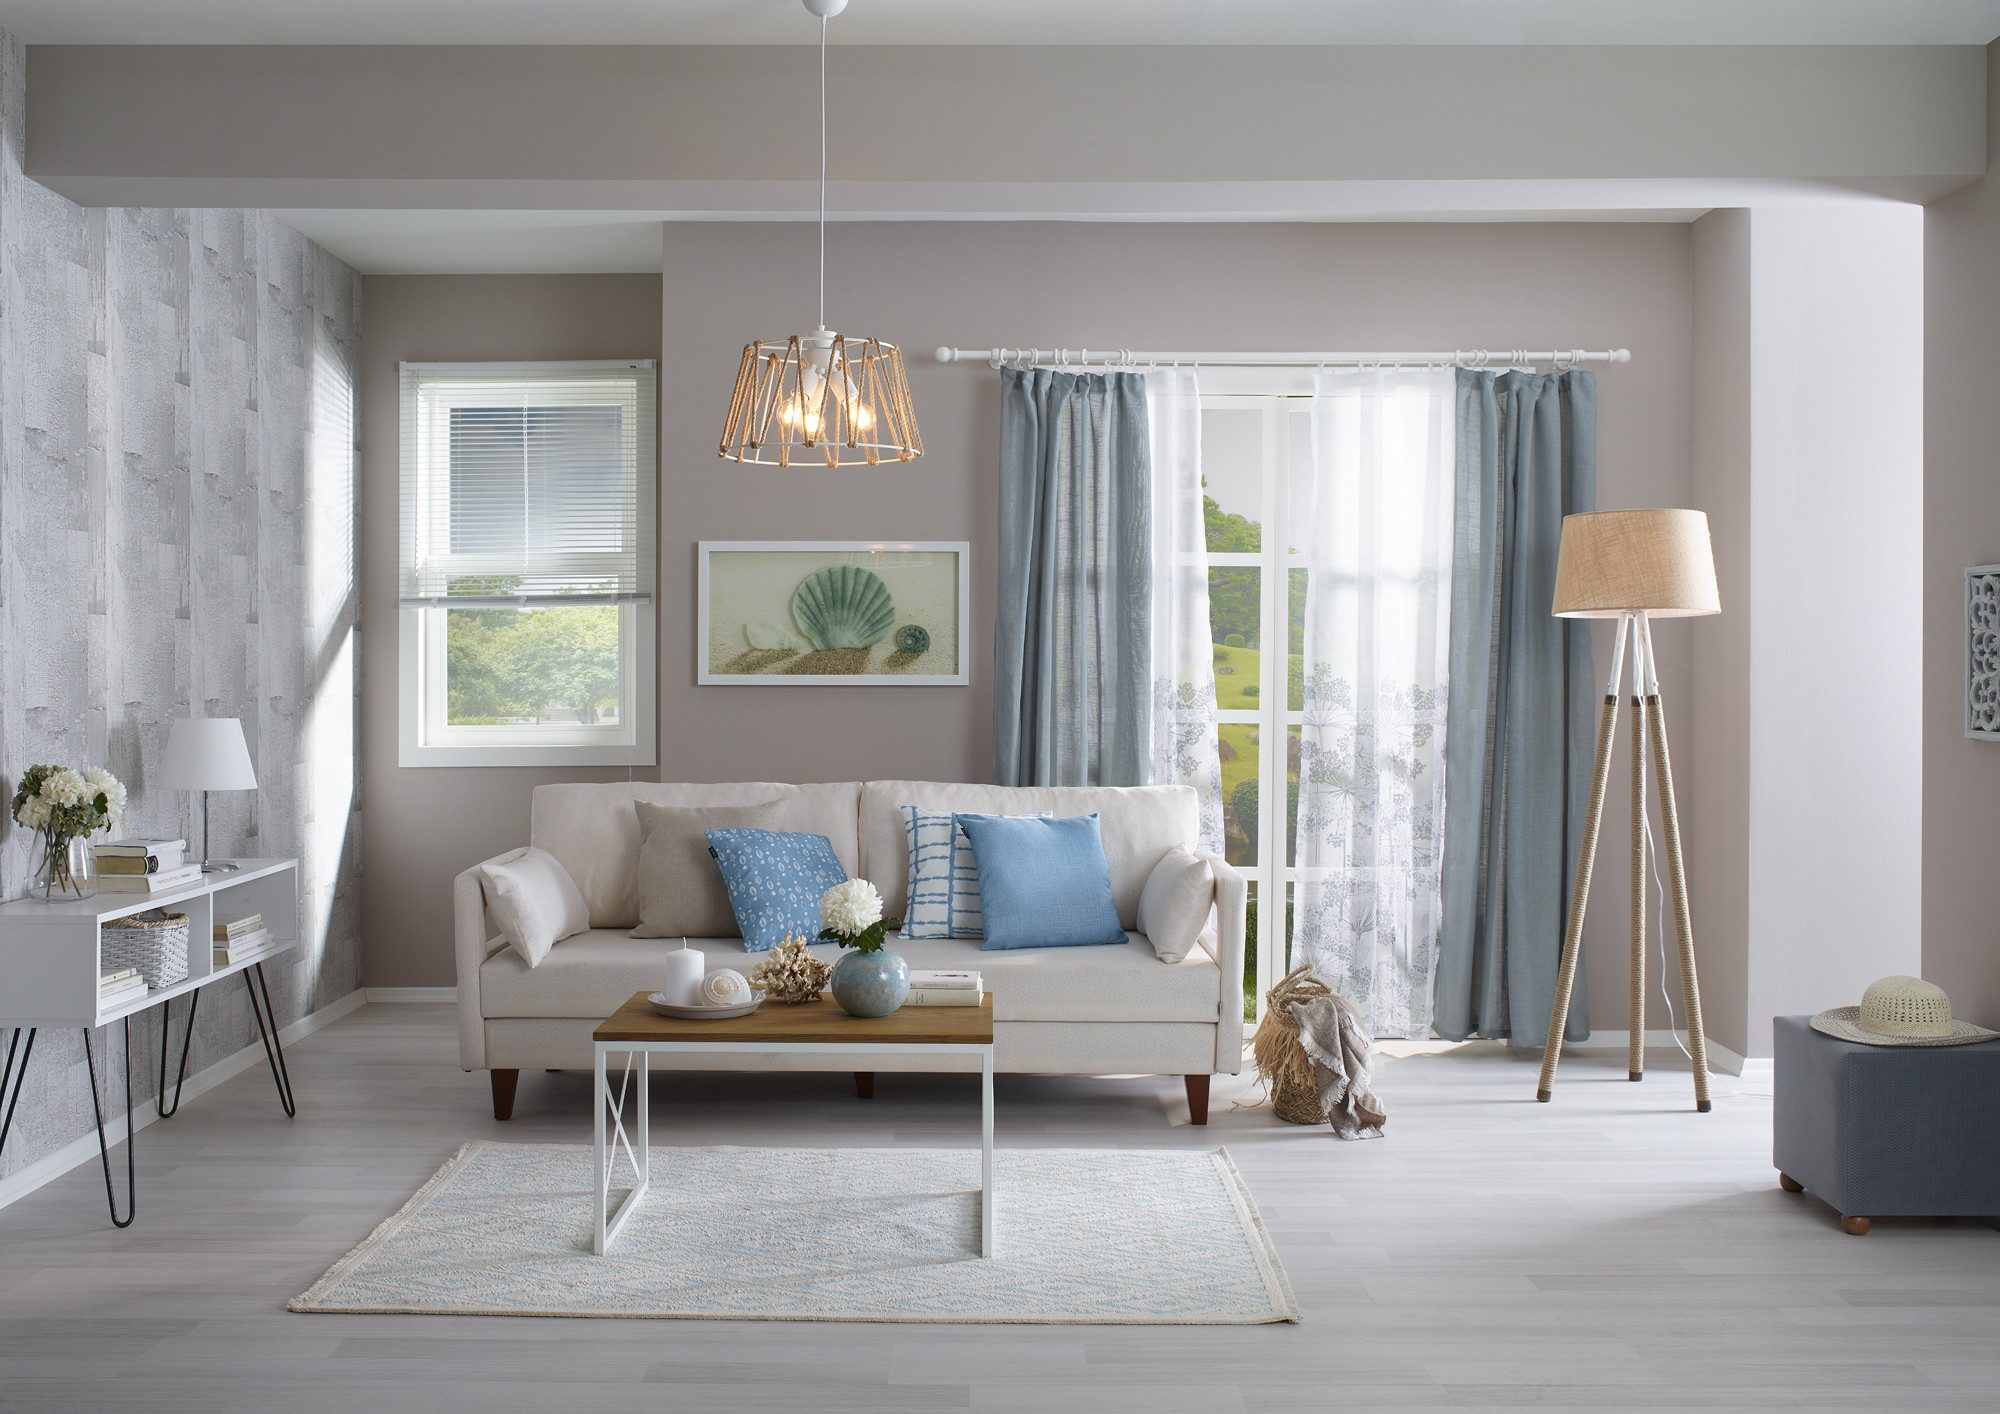 How To Install Rectangular Living Room Icreatived